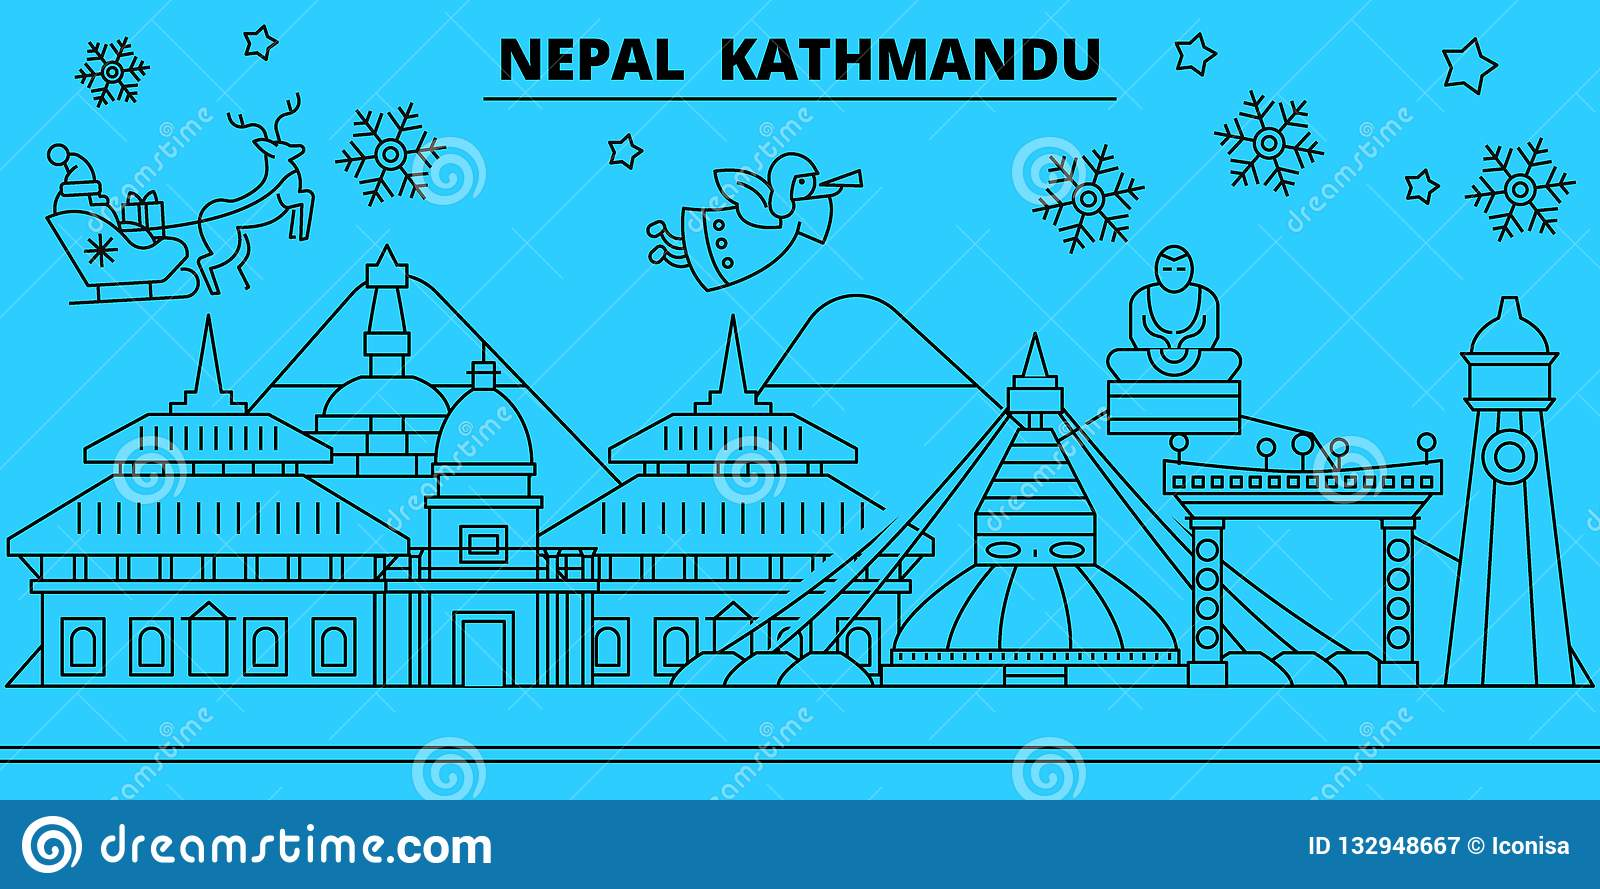 Nepal Kathmandu Winter Holidays Skyline Merry Christmas Happy New